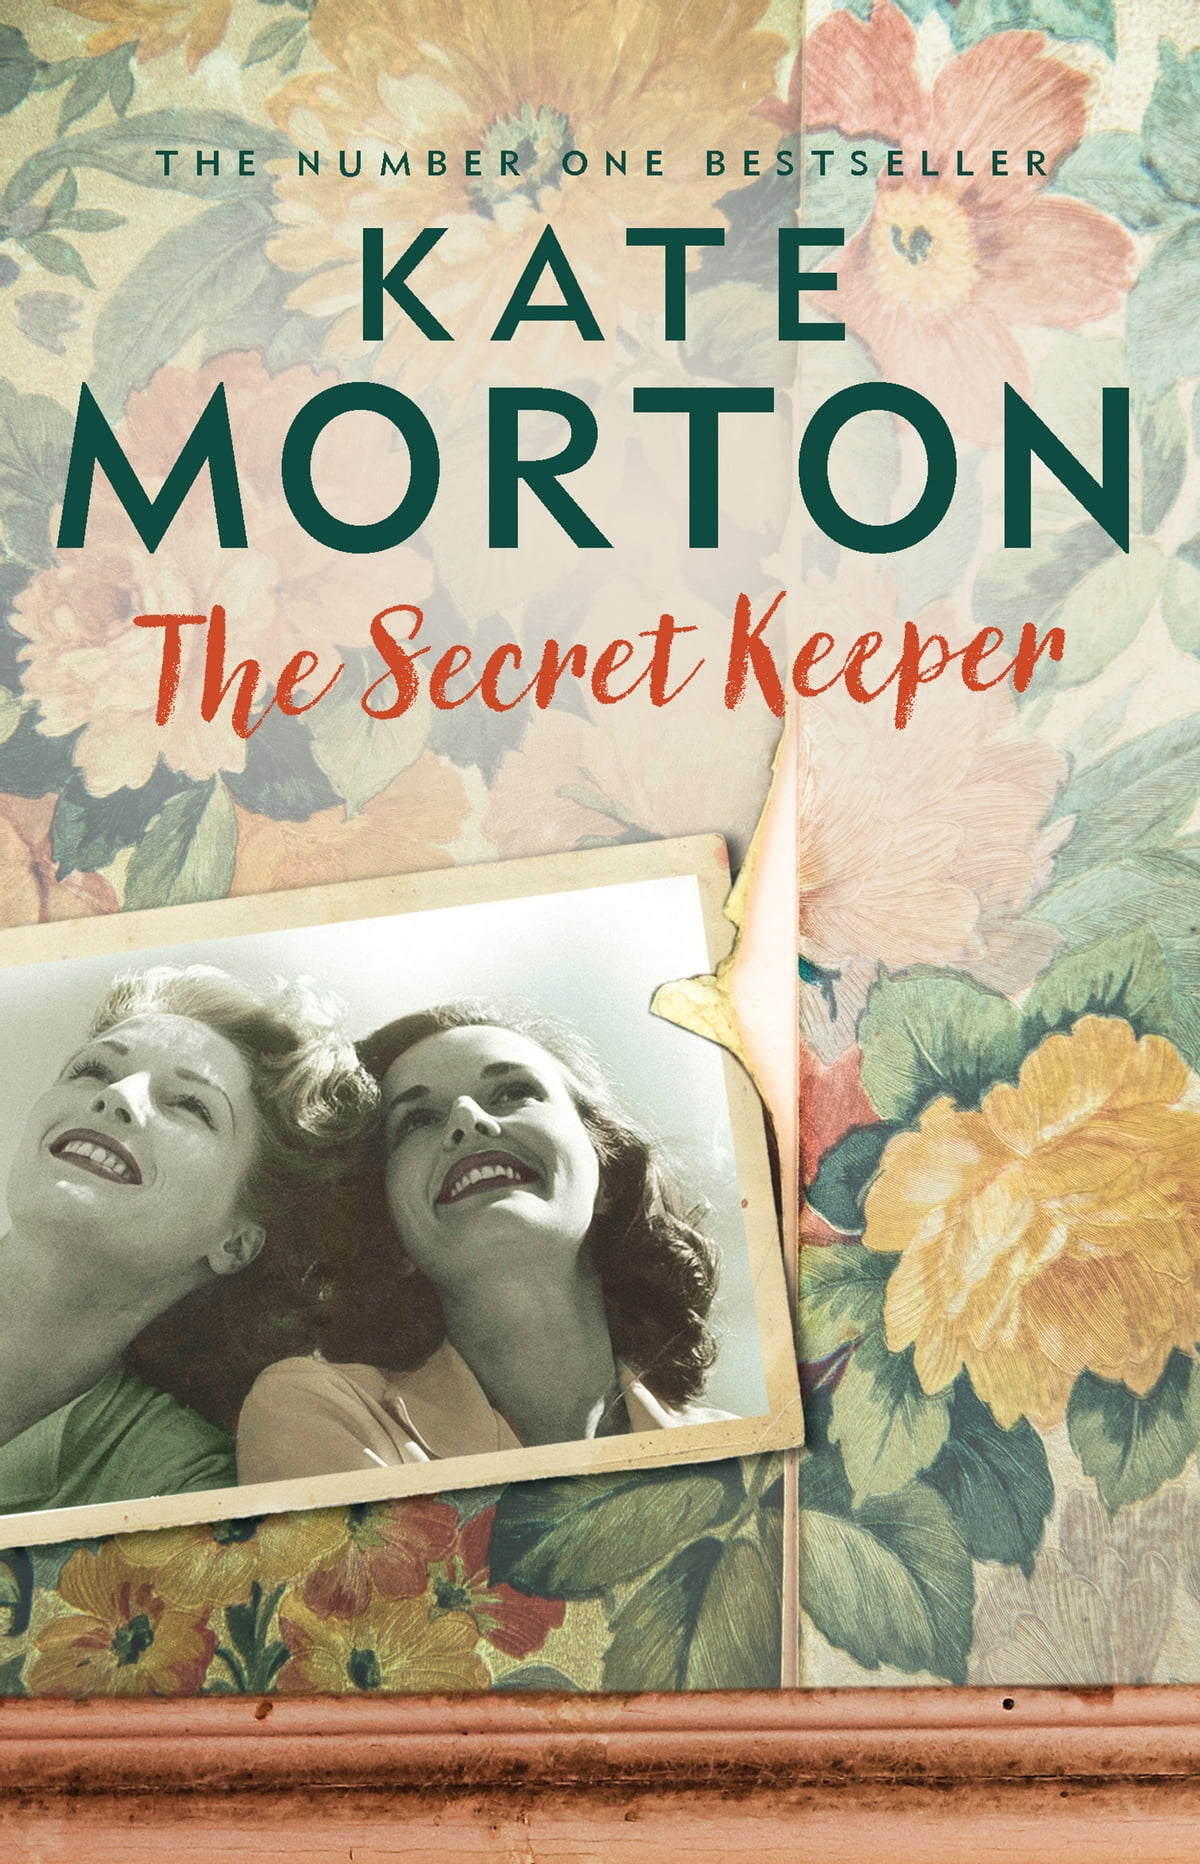 Forum on this topic: The Secret Keeper, Kate Morton, the-secret-keeper-kate-morton/